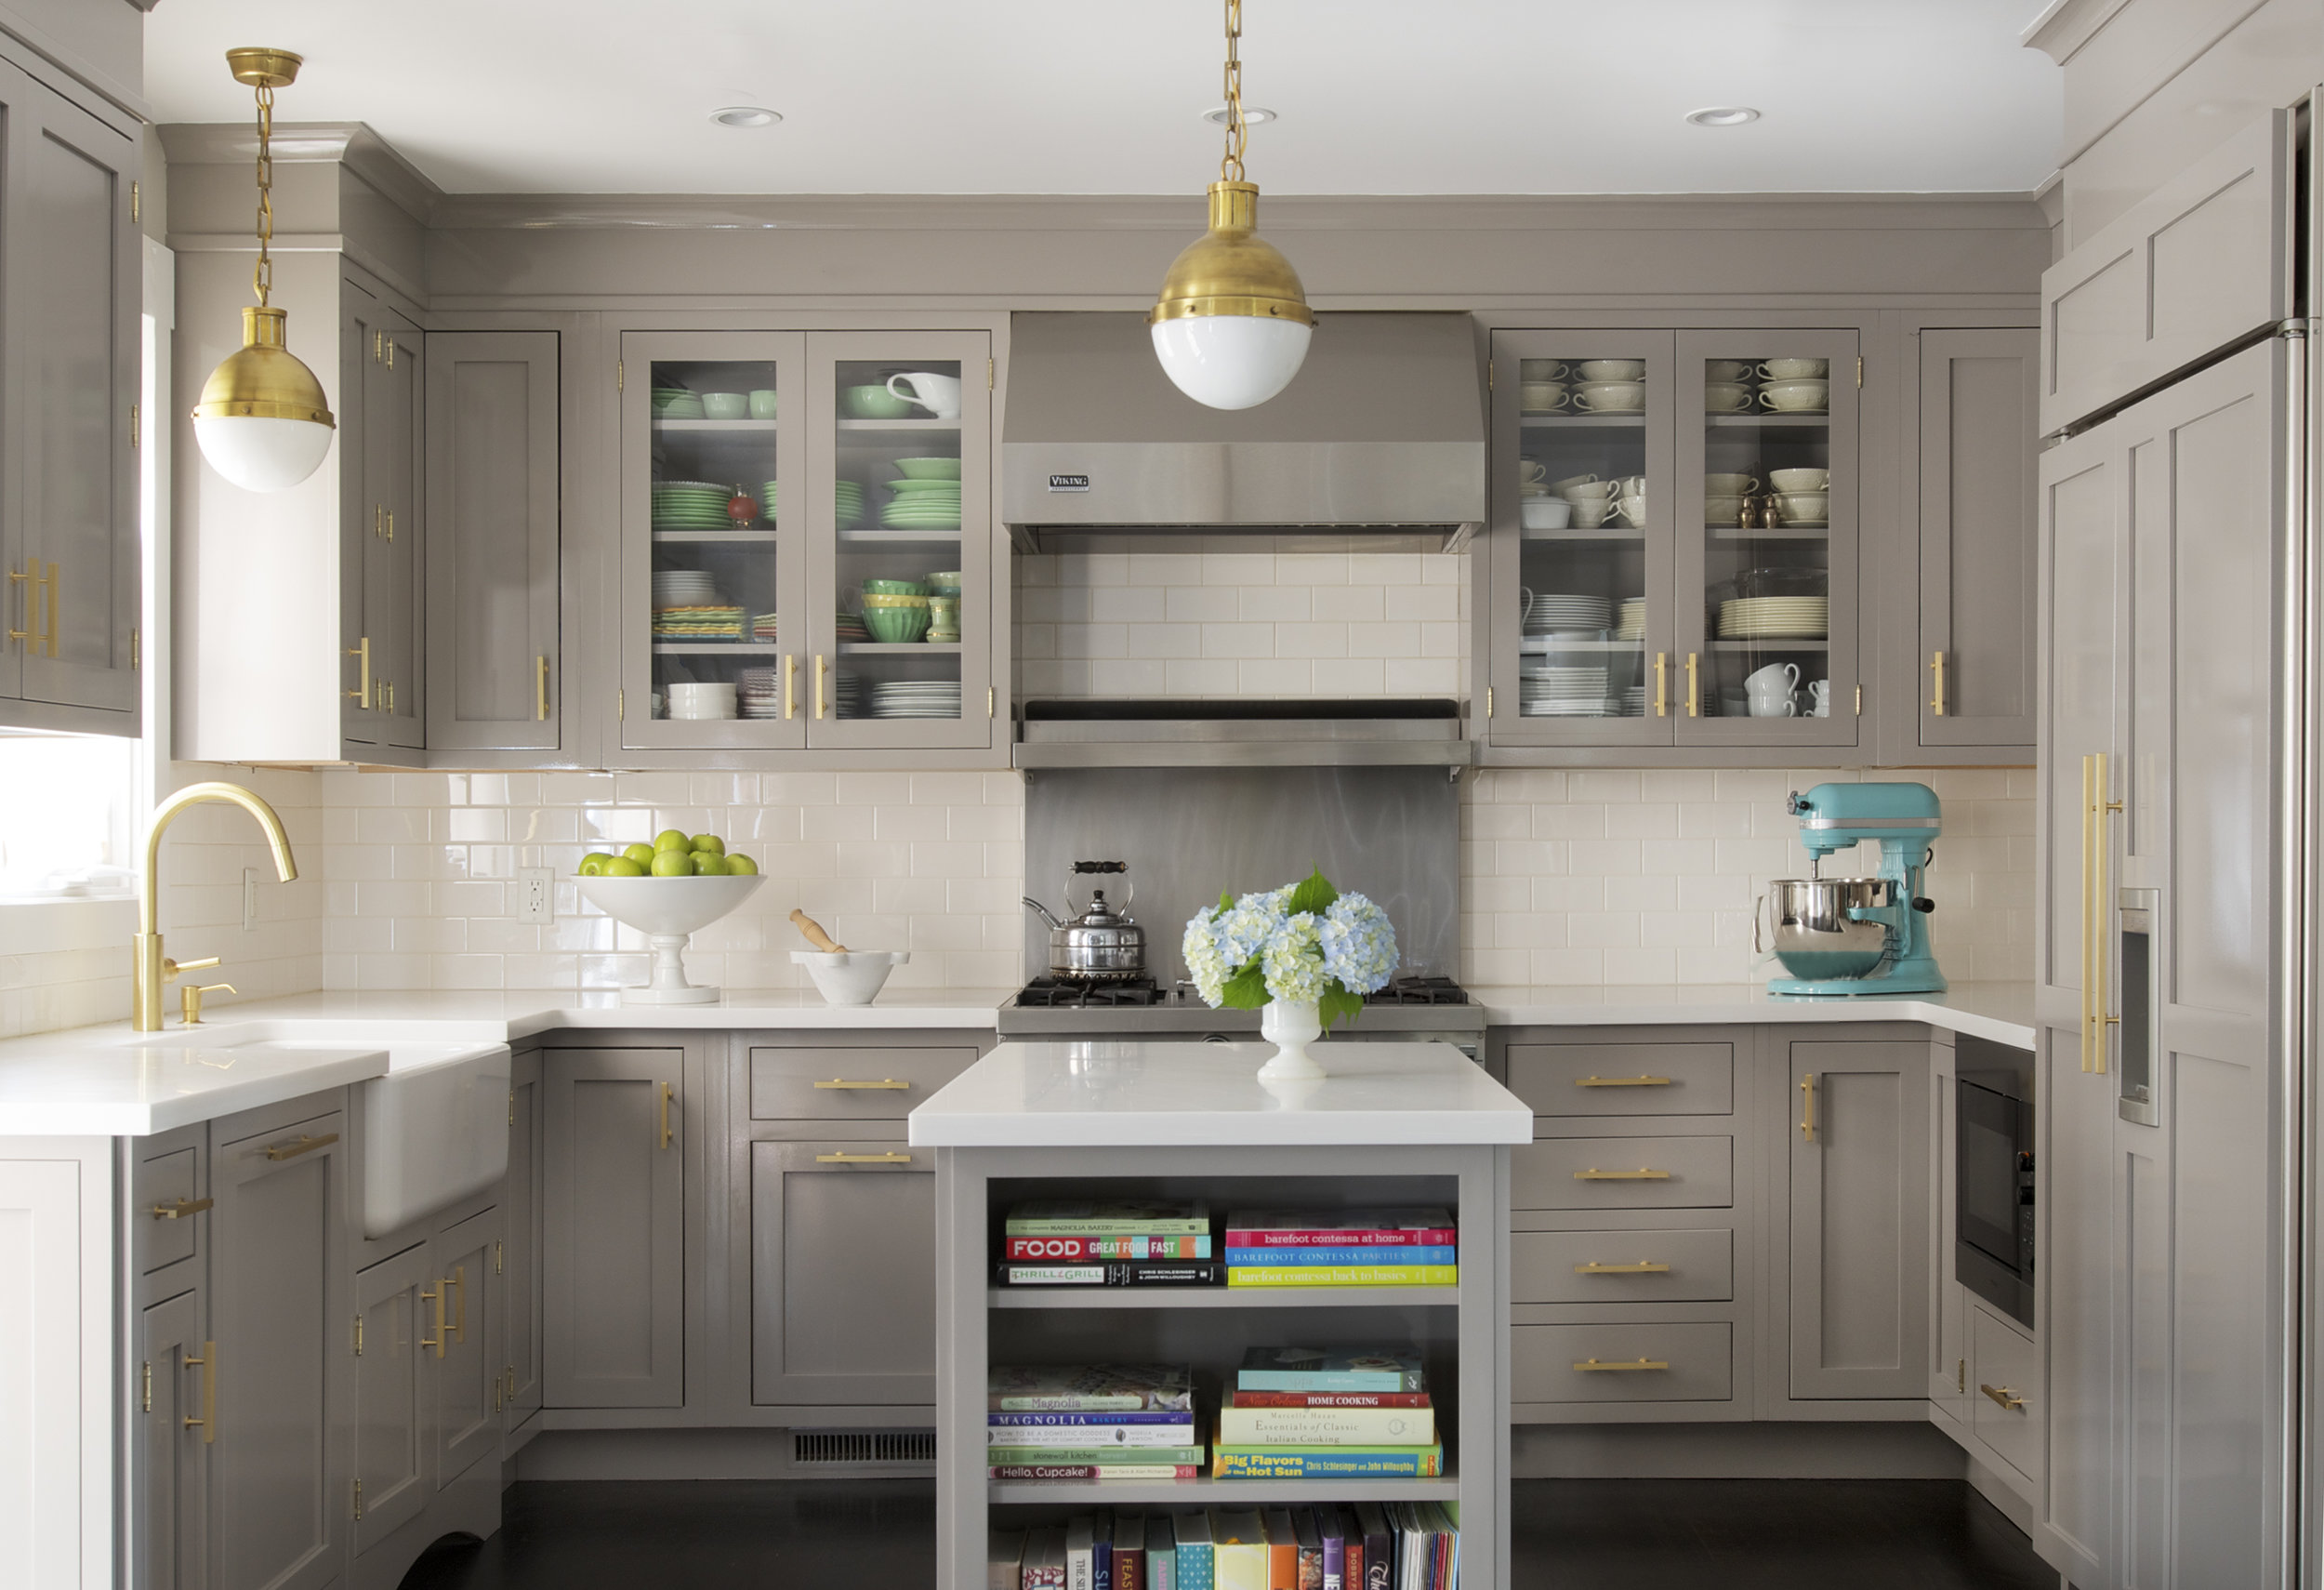 The interior designer Michelle Morgan Harrison of Morgan Harrison Home styled her former home to sell quickly, and it did. Credit Jane Beiles